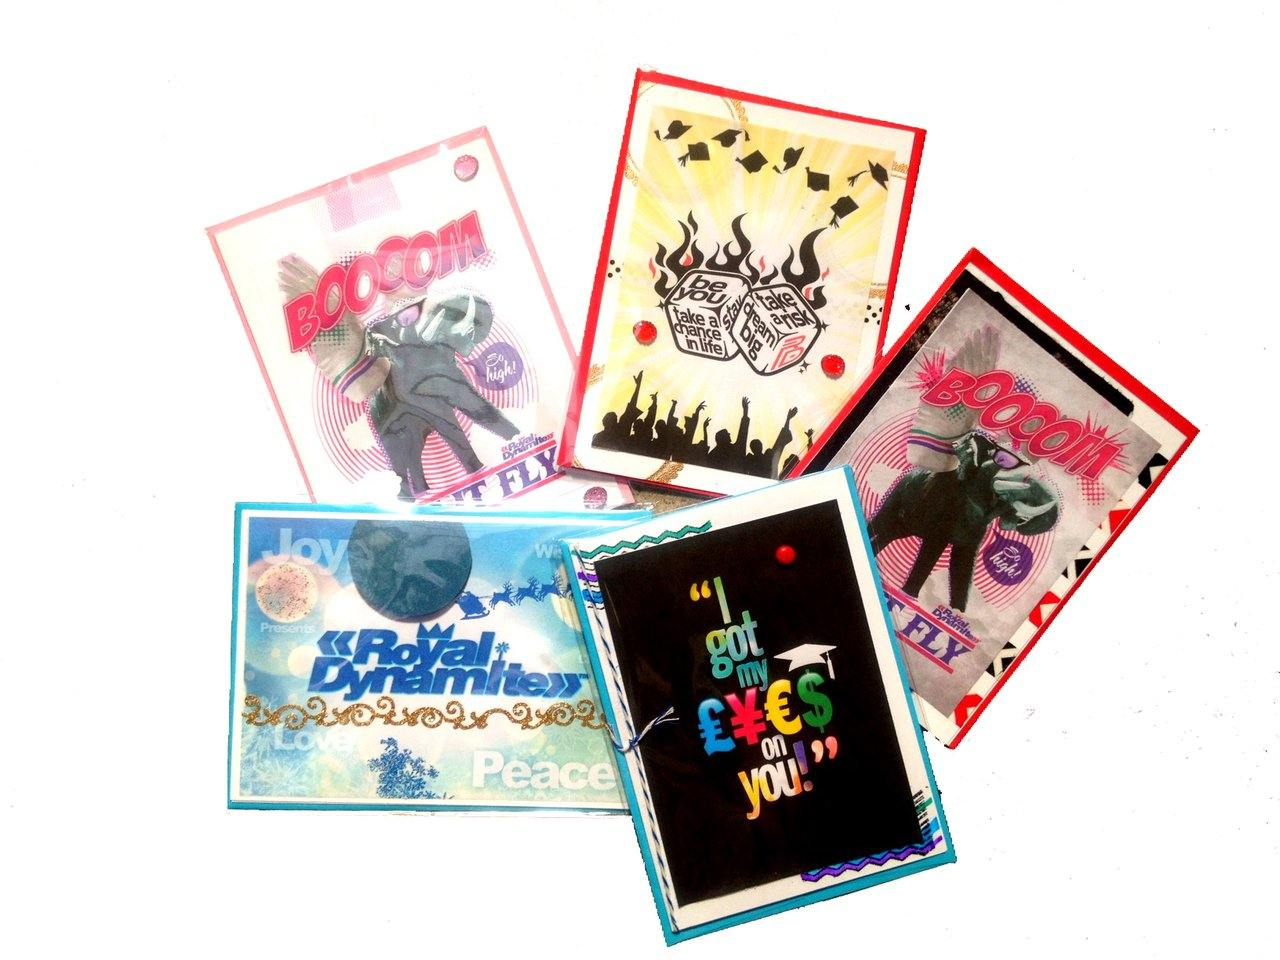 Hip Graphic T-Shirt Line Royal Dynamite Partners with Princess K Creations to Bring You Exclusive Greeting Card Collection